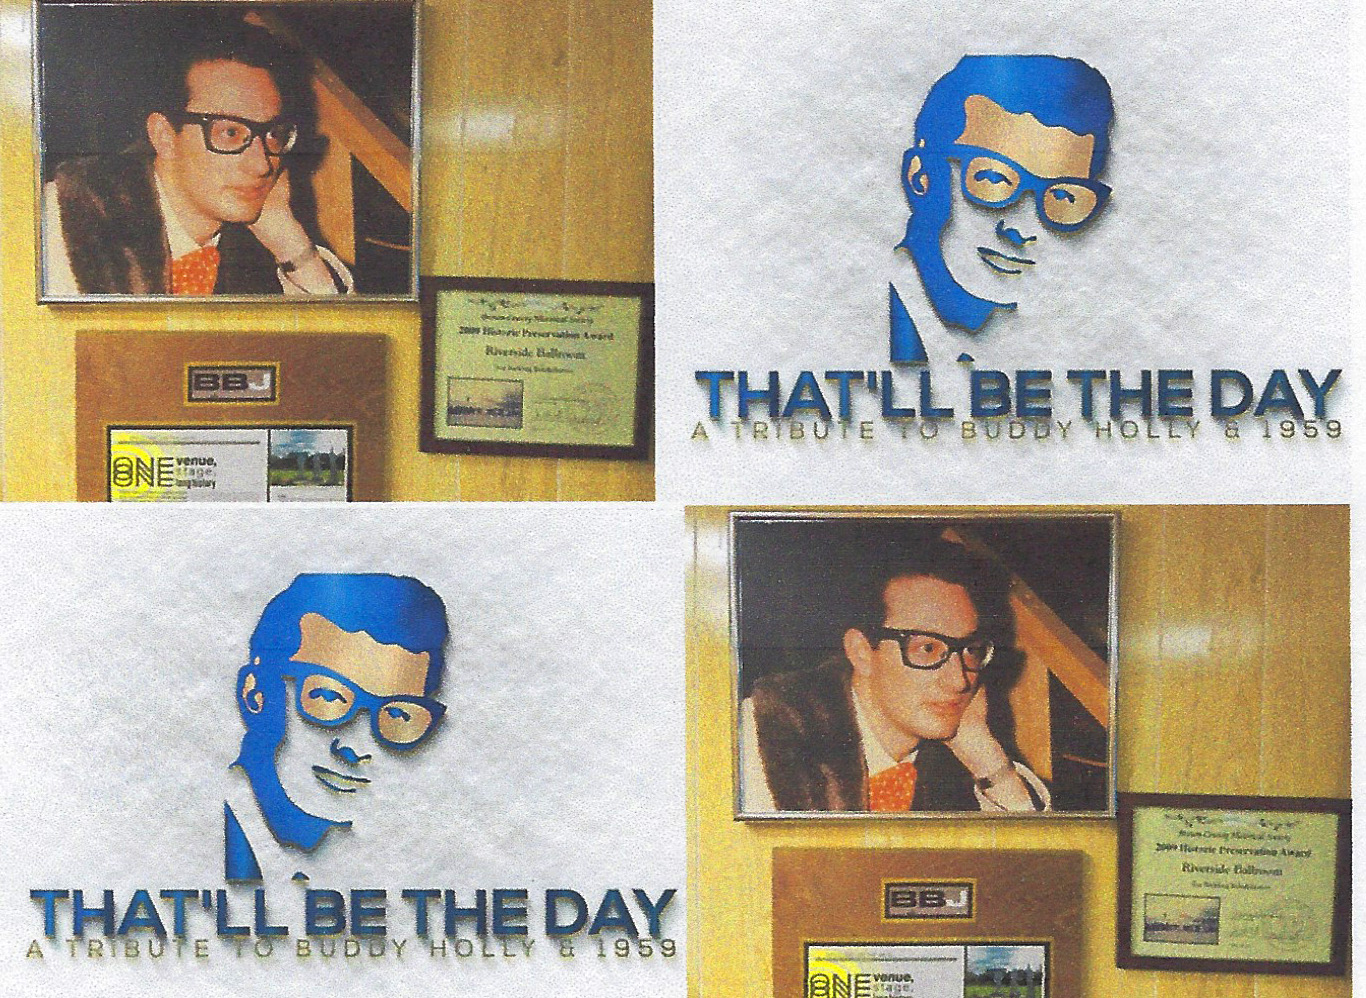 Buddy Holly images_1536335847701.jpg.jpg